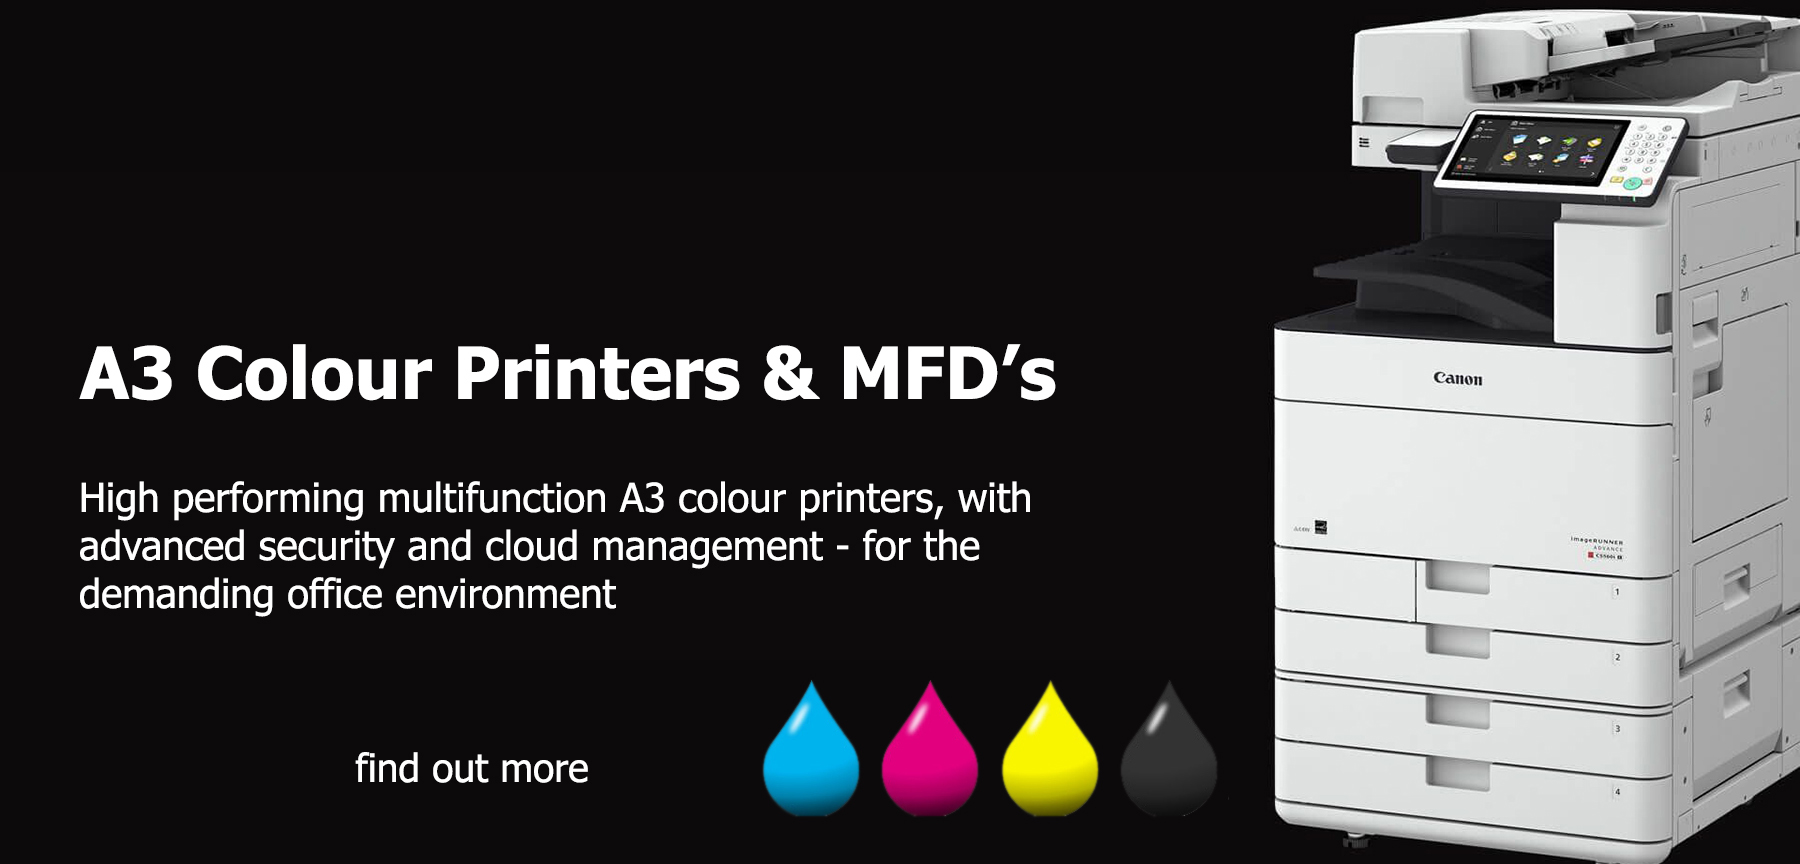 Cheshire photocopier printer supplier, photocopier lease rental in Cheshire